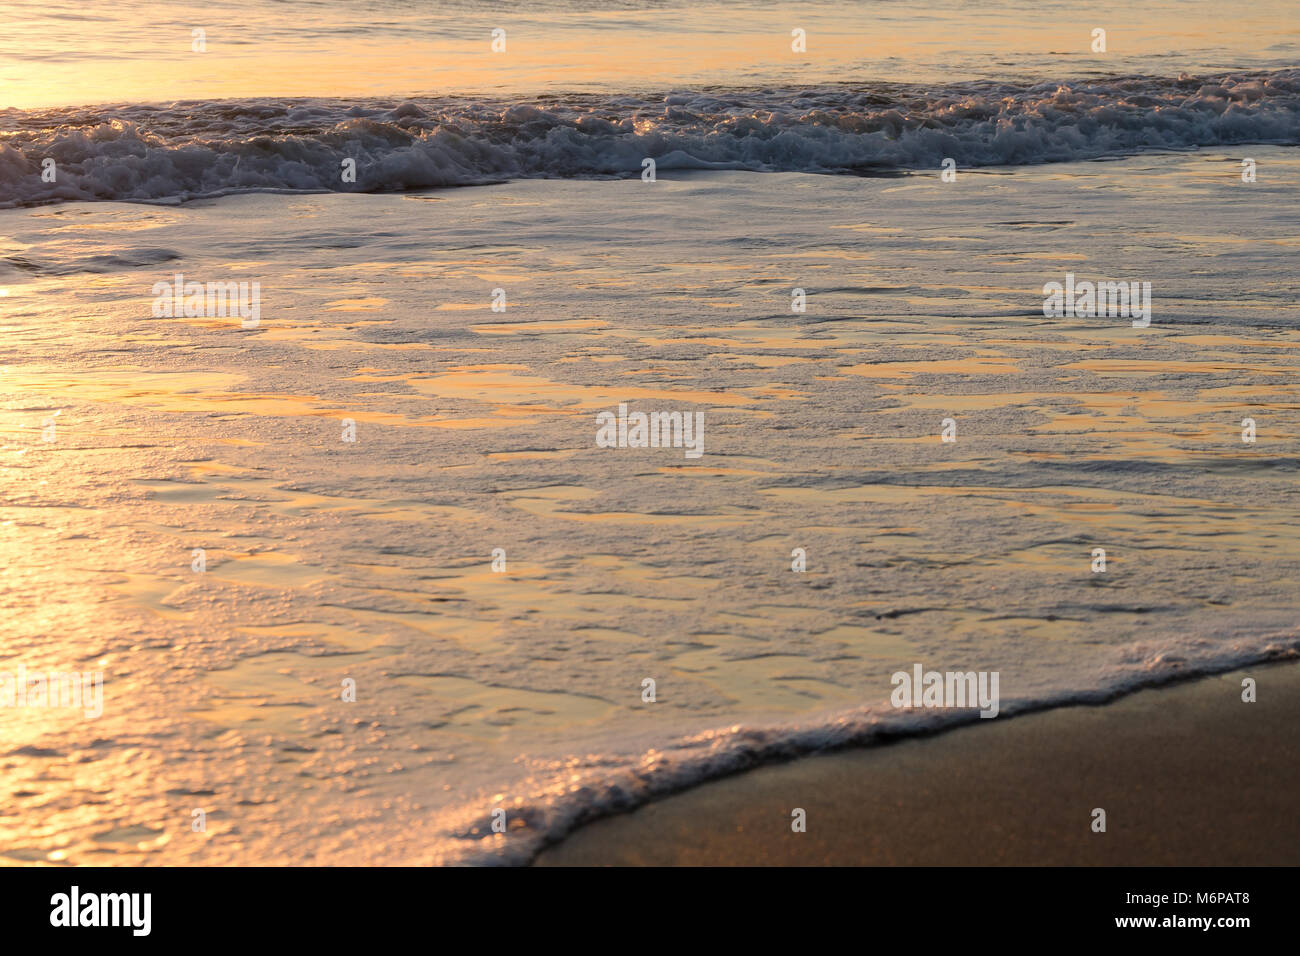 Seascape background with golden colored gentle breaking sea waves lapping on the beach at sunrise - Stock Image